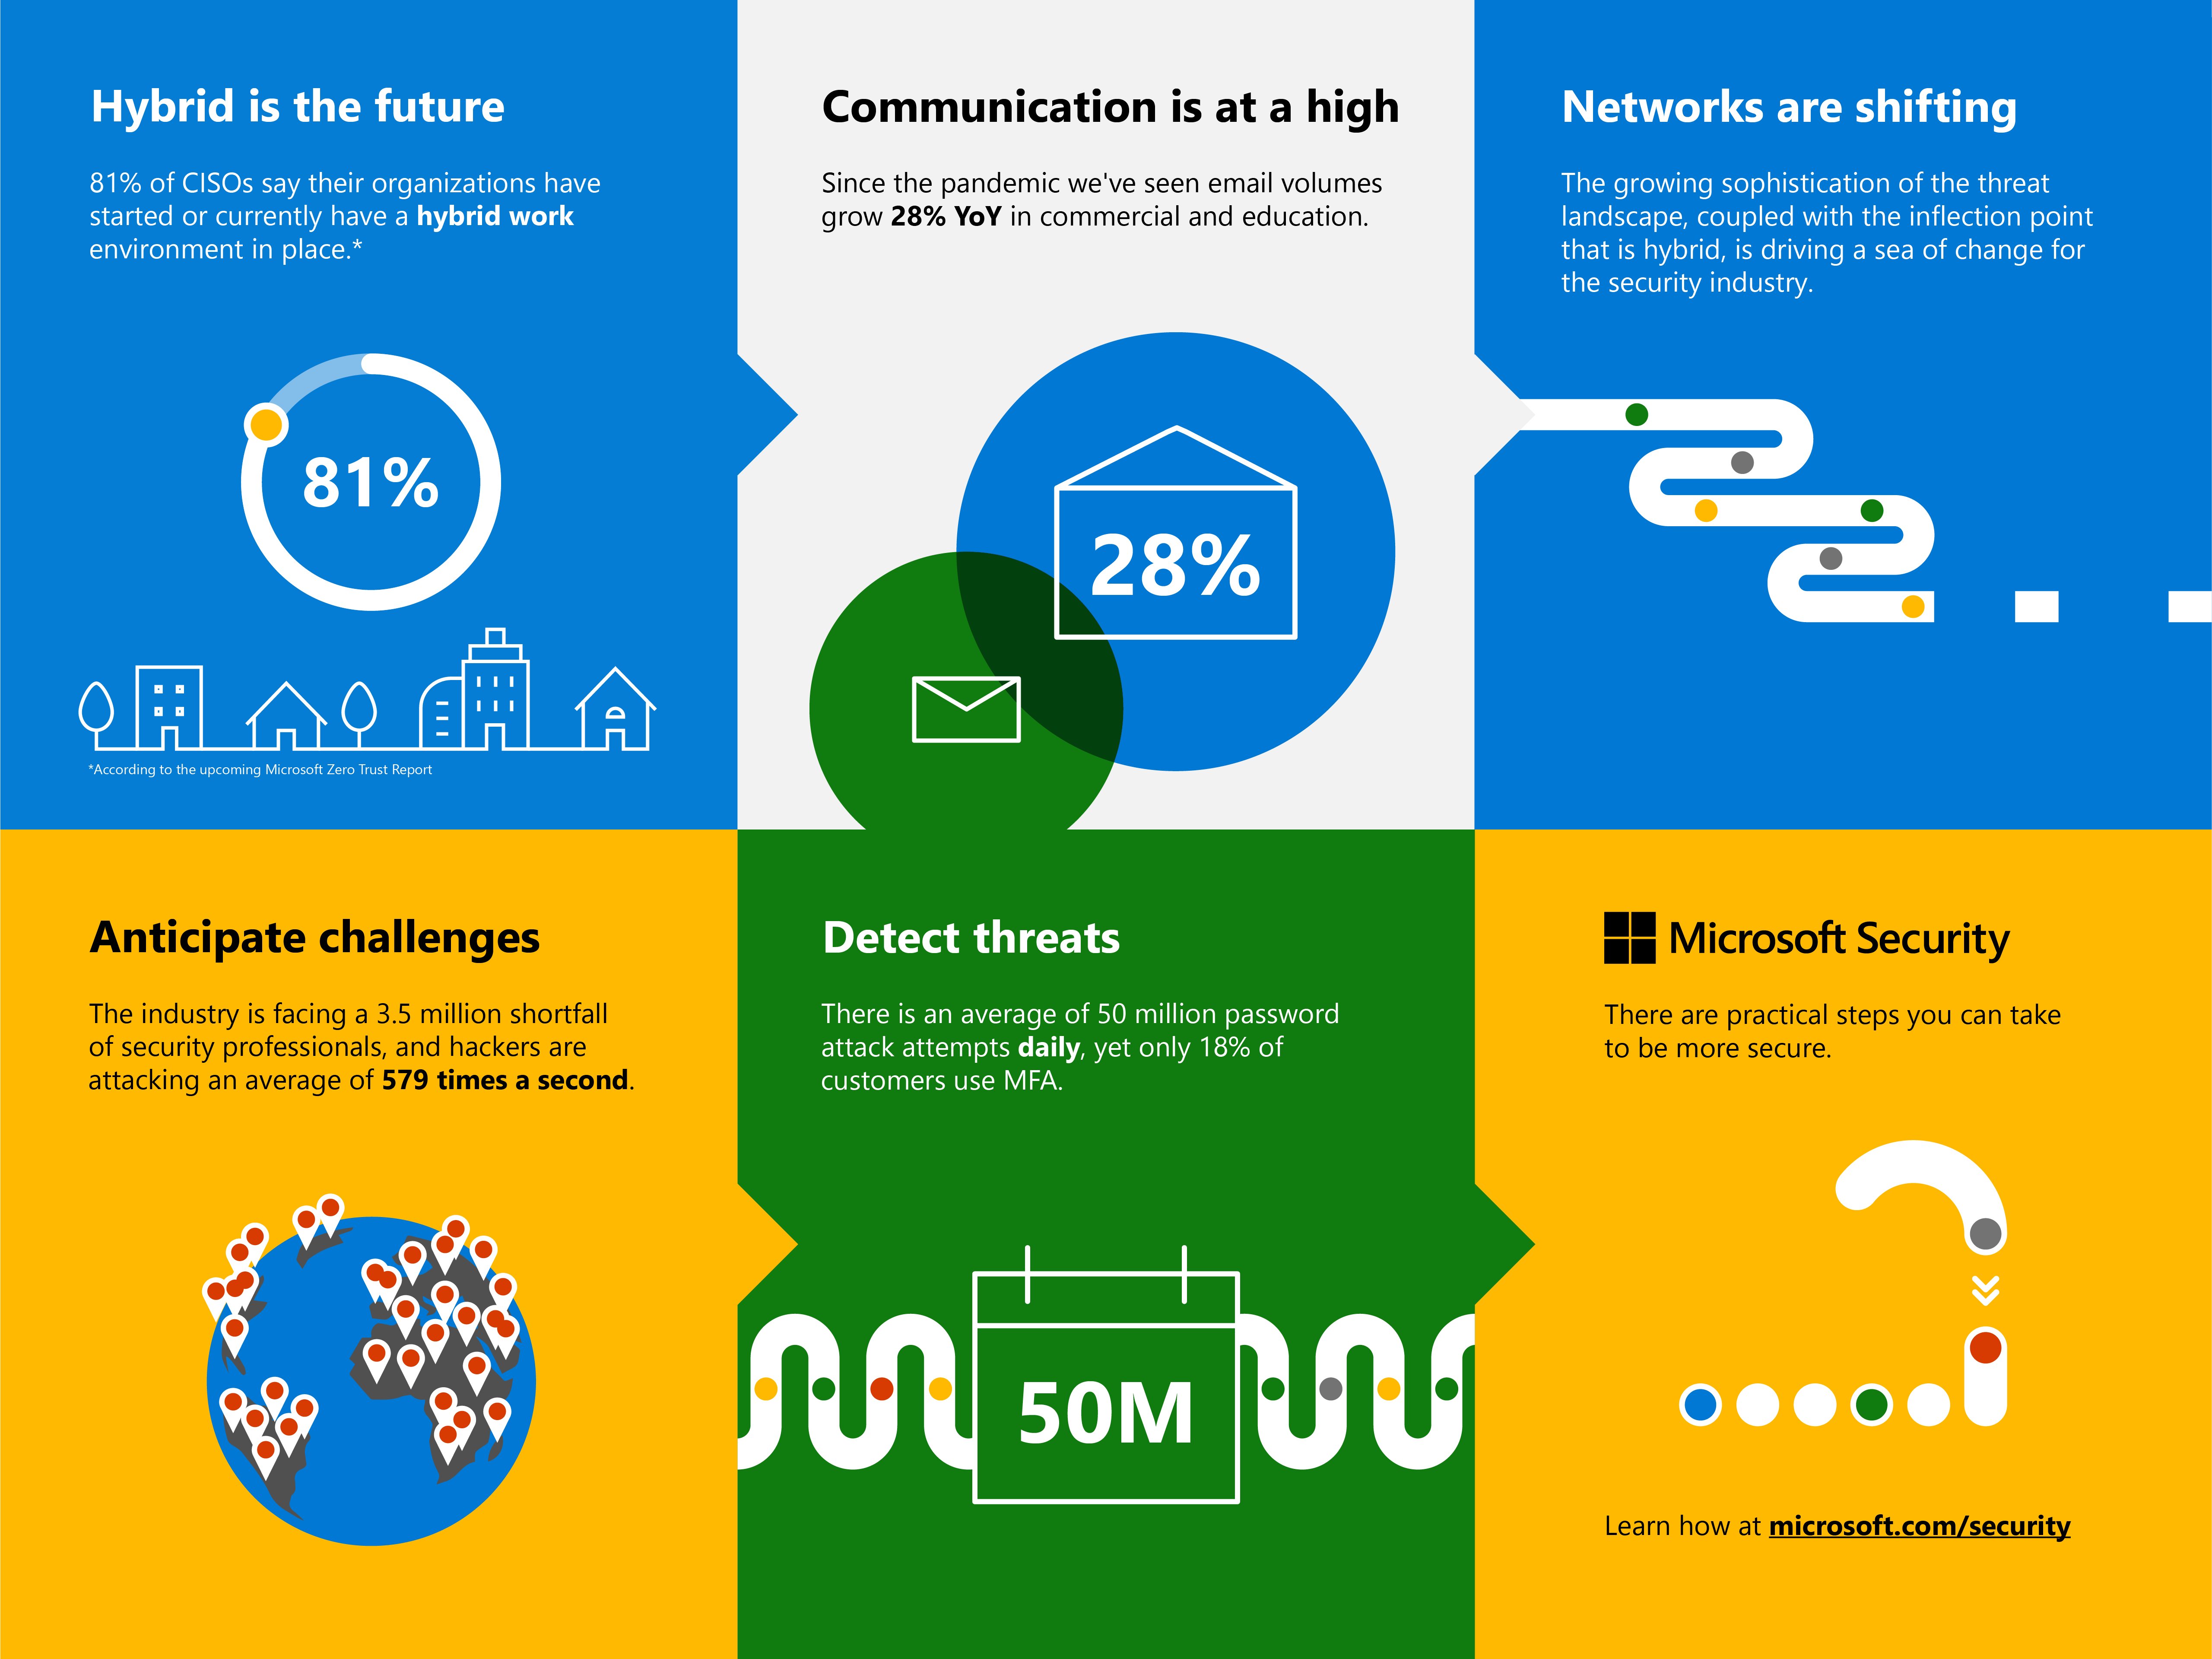 Chart detailing the future of hybrid work. With communication at a high, networks are shifting and threats are increasing.